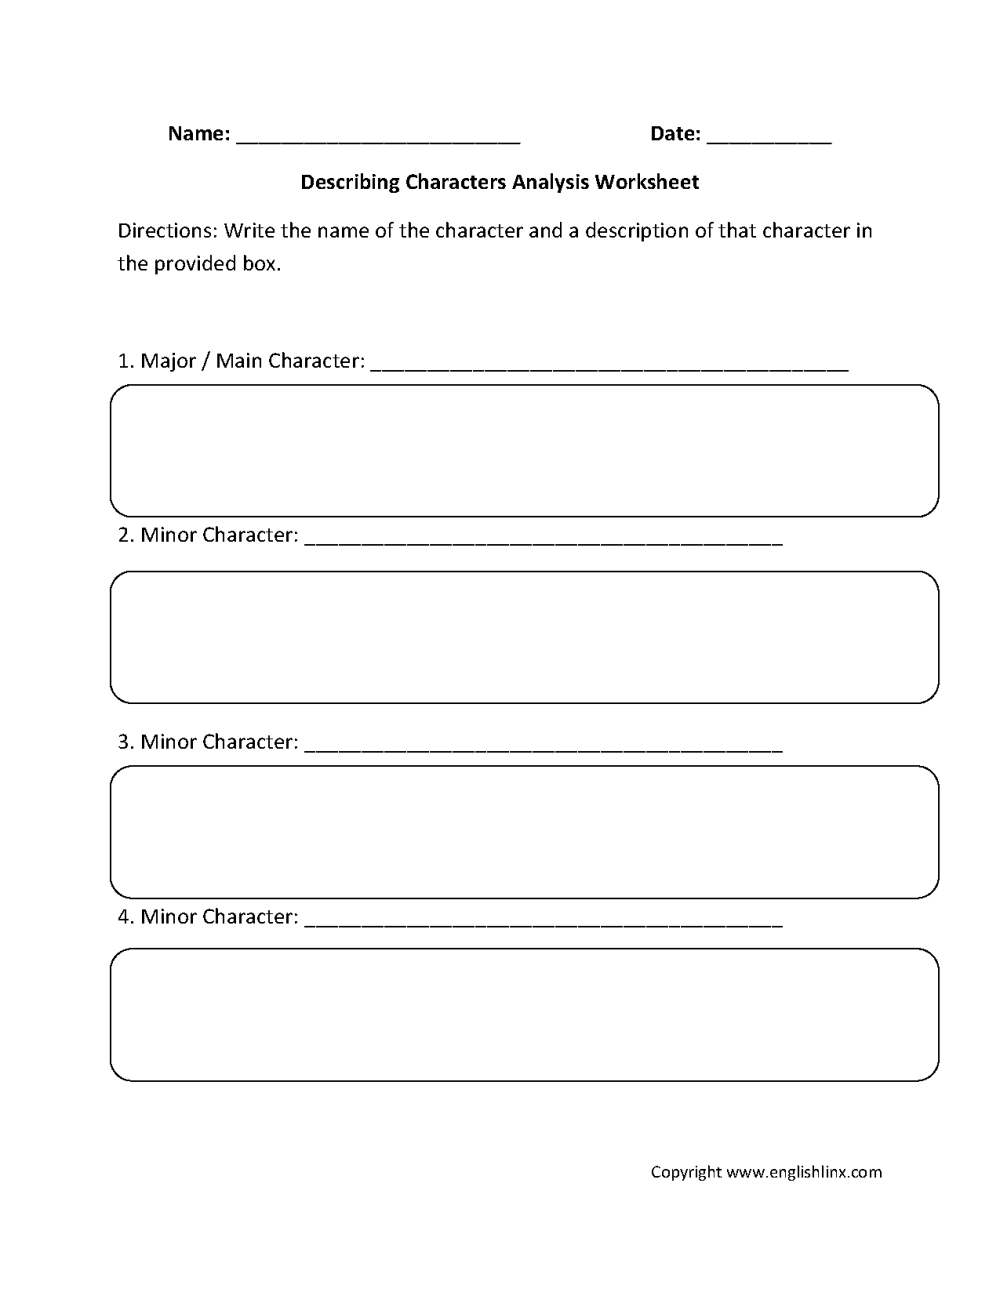 medium resolution of Character Analysis Worksheets   Describing Character Analysis Worksheets